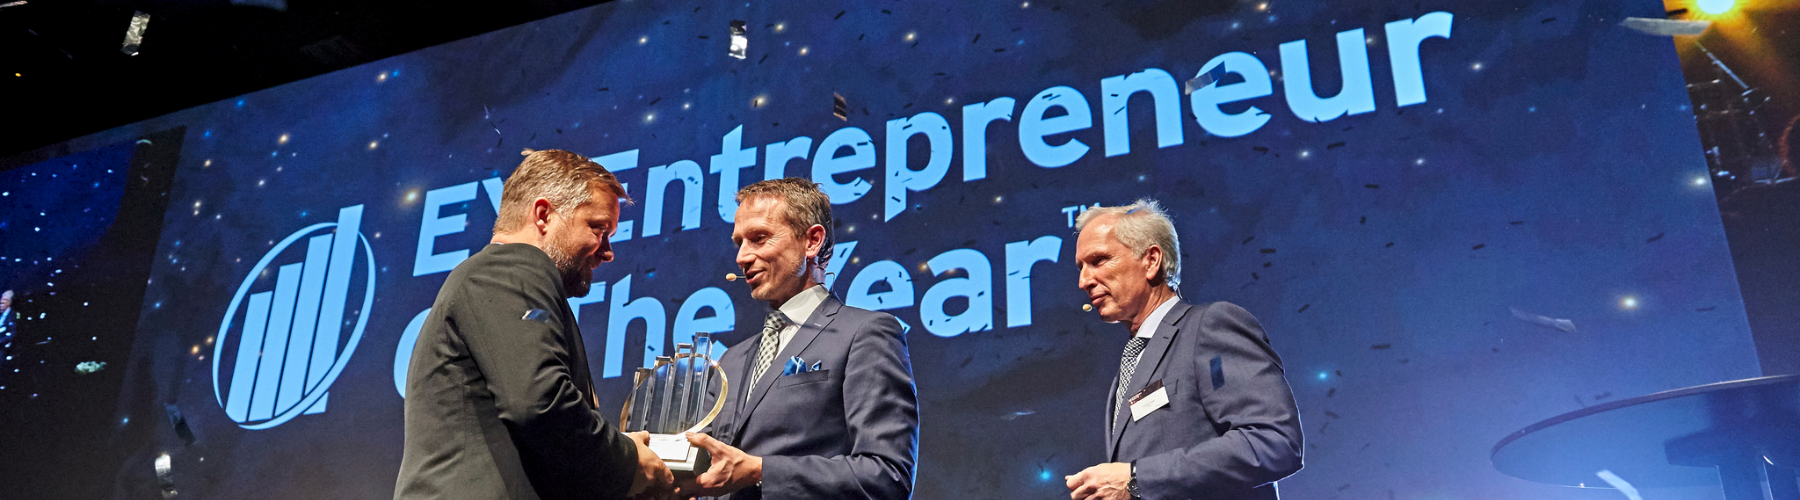 EY Entrepreneur of the Year Denmark cover image